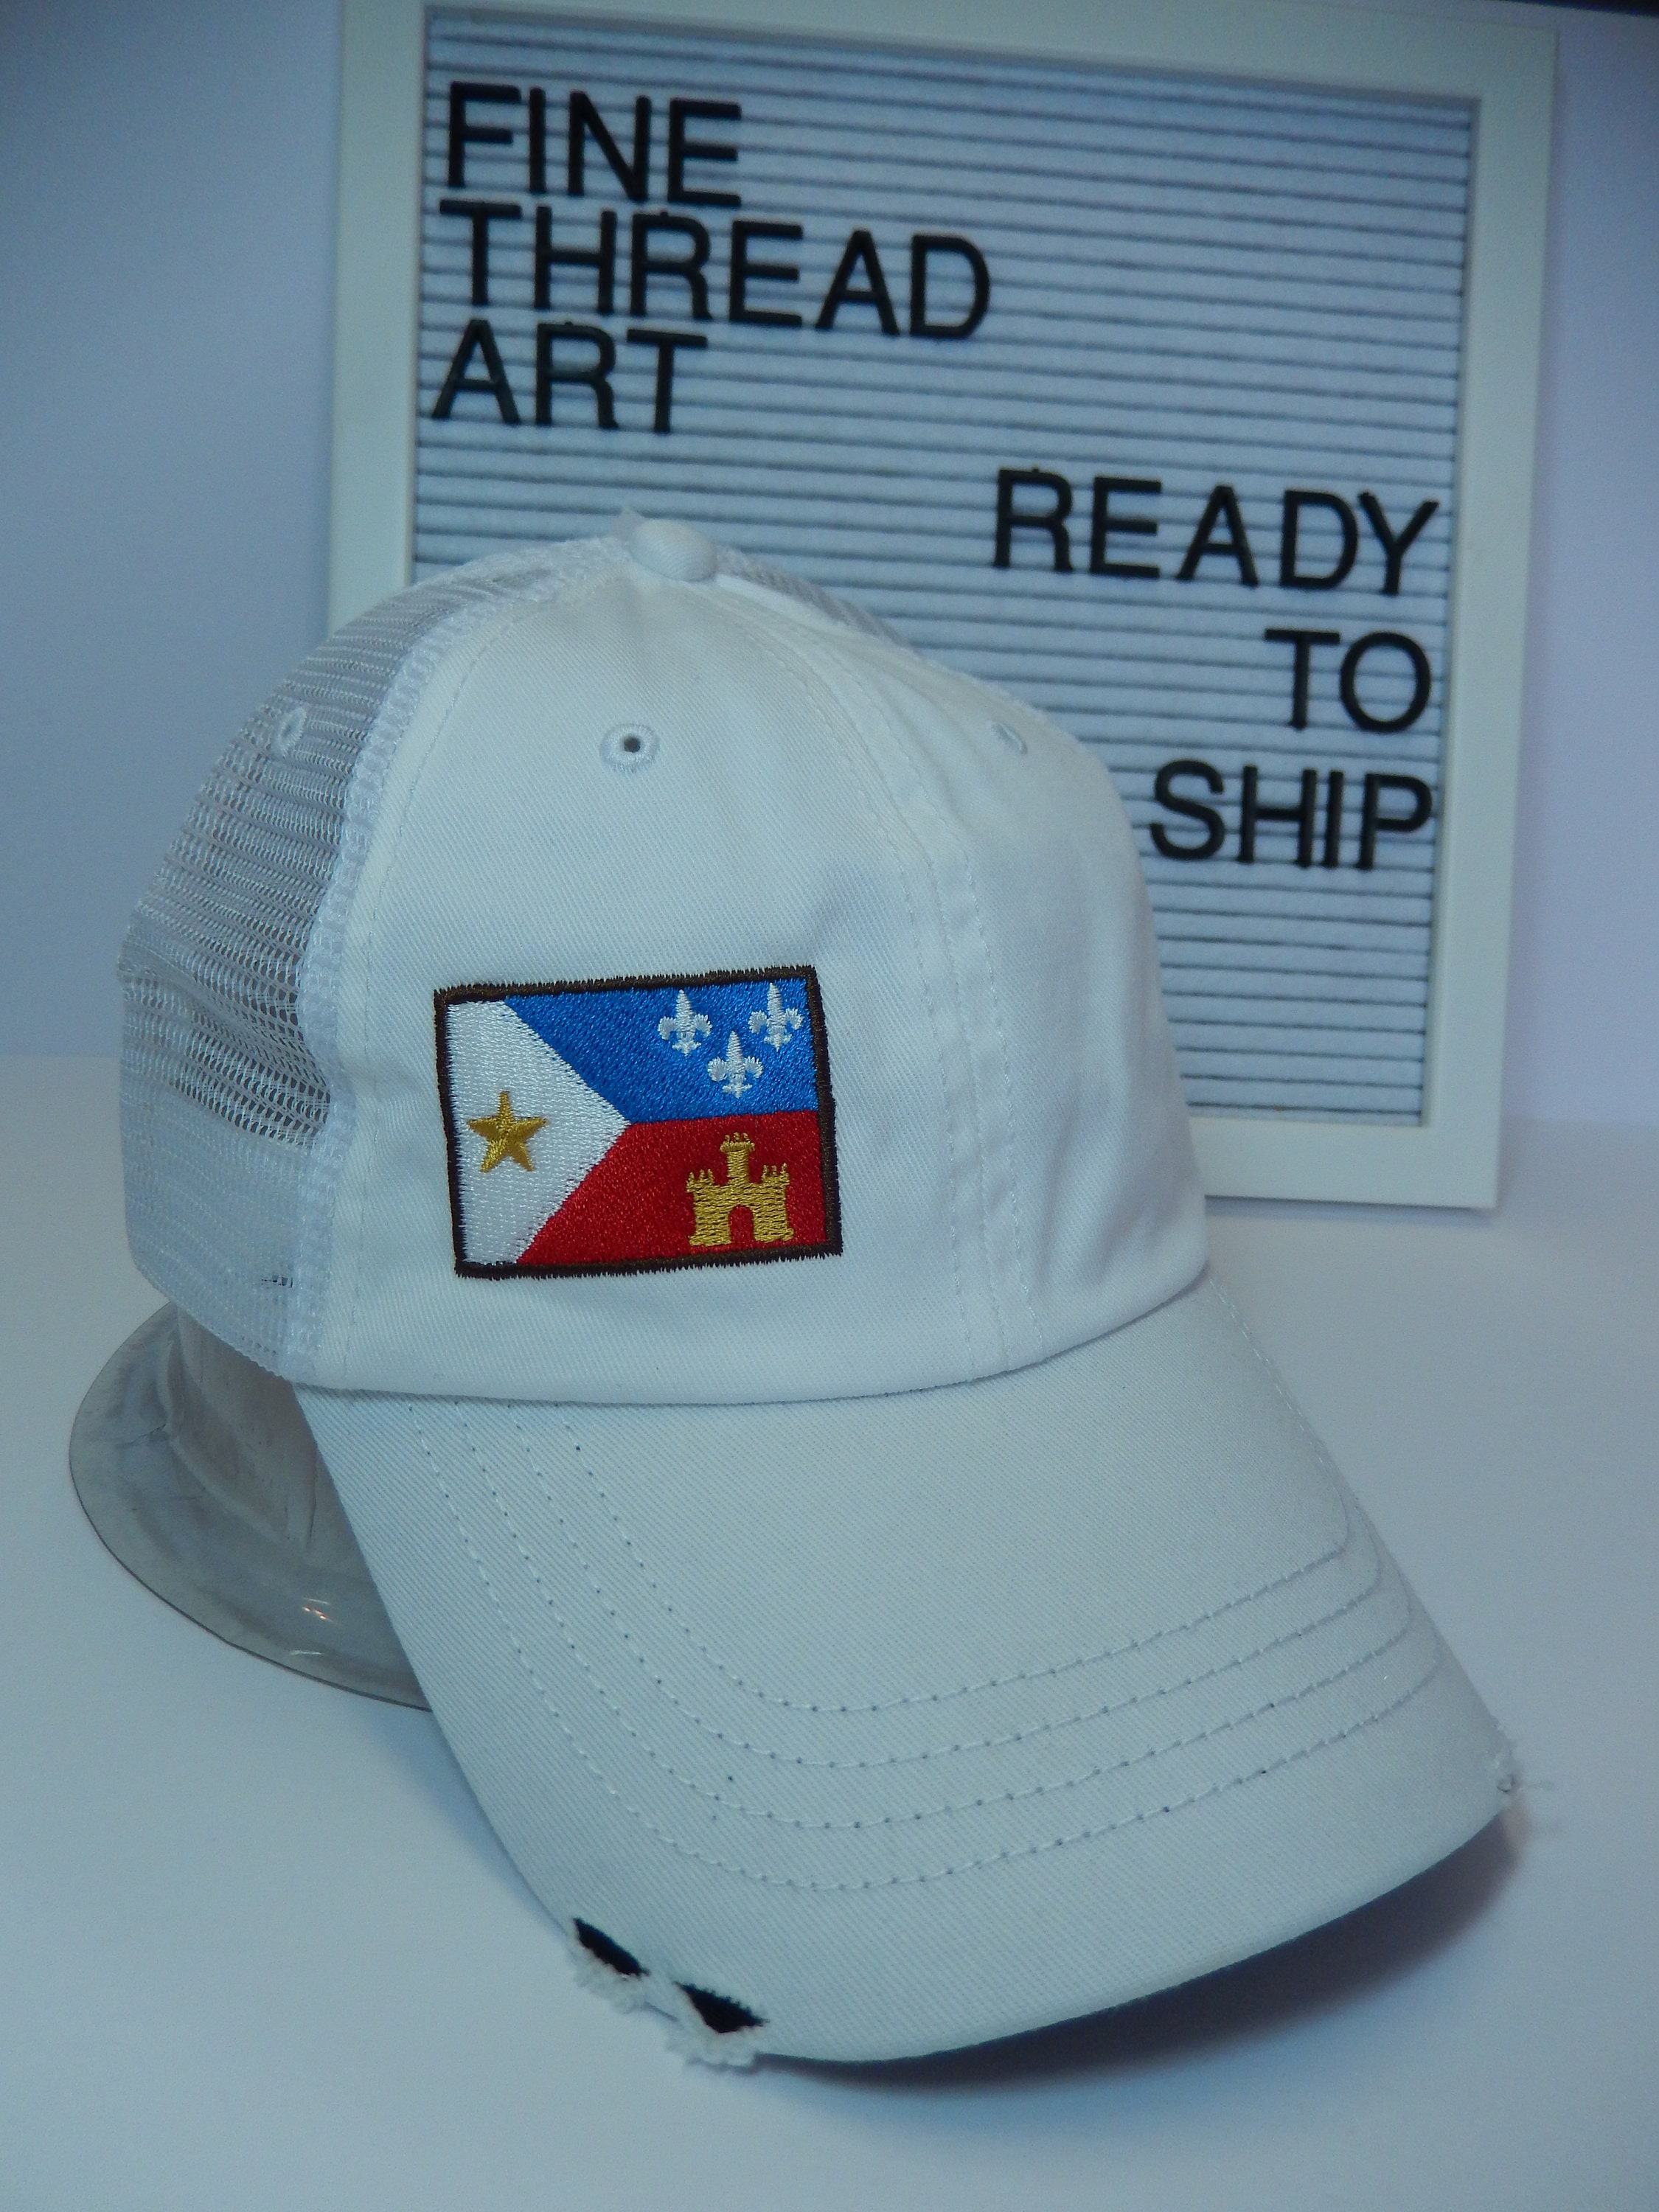 READY TO SHIP adult hat